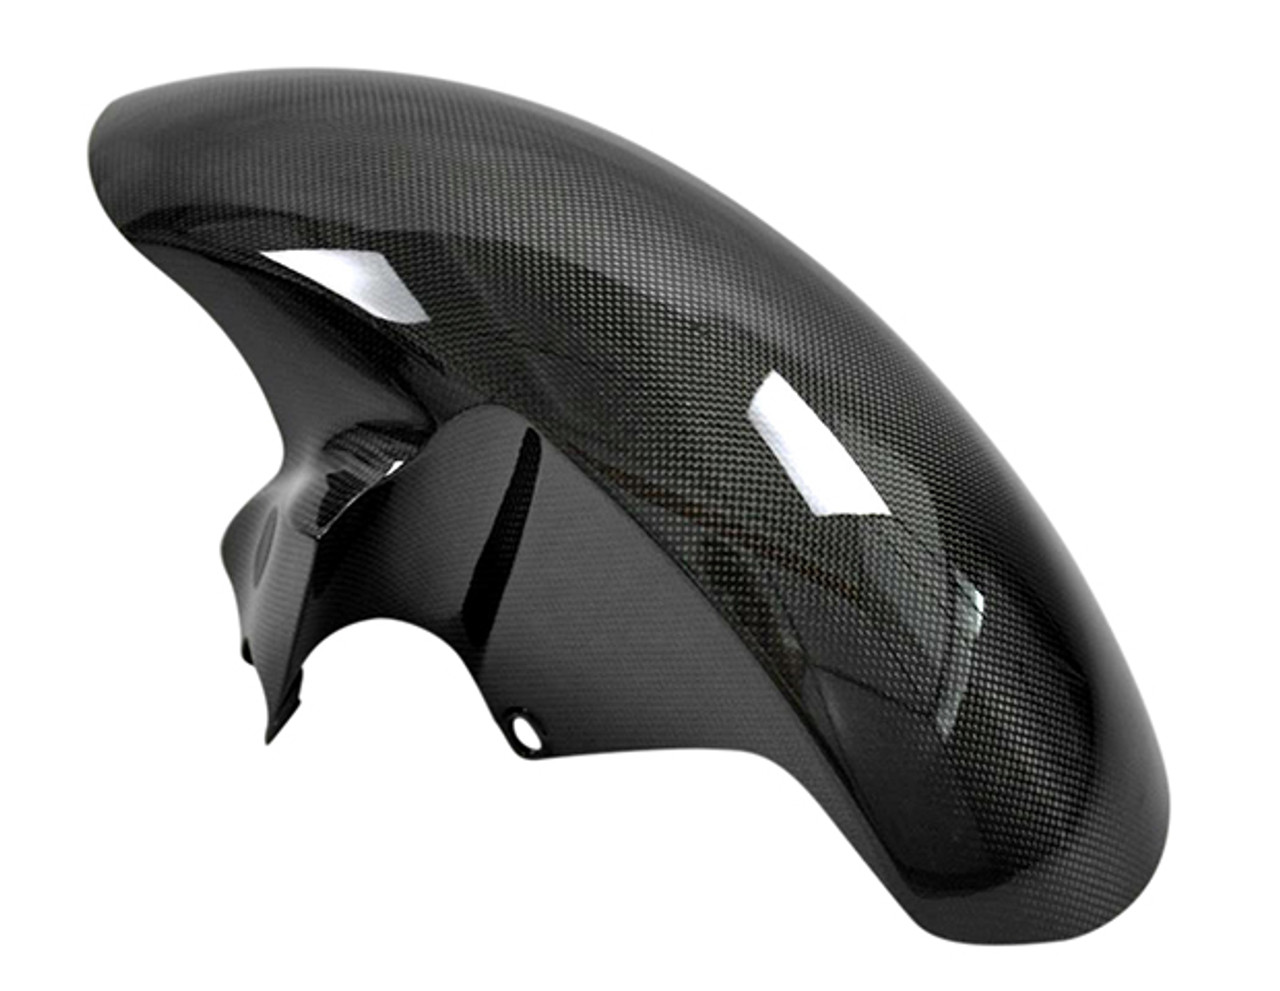 Glossy Twill Weave Carbon Fiber Front Fender for Yamaha R6 06-16